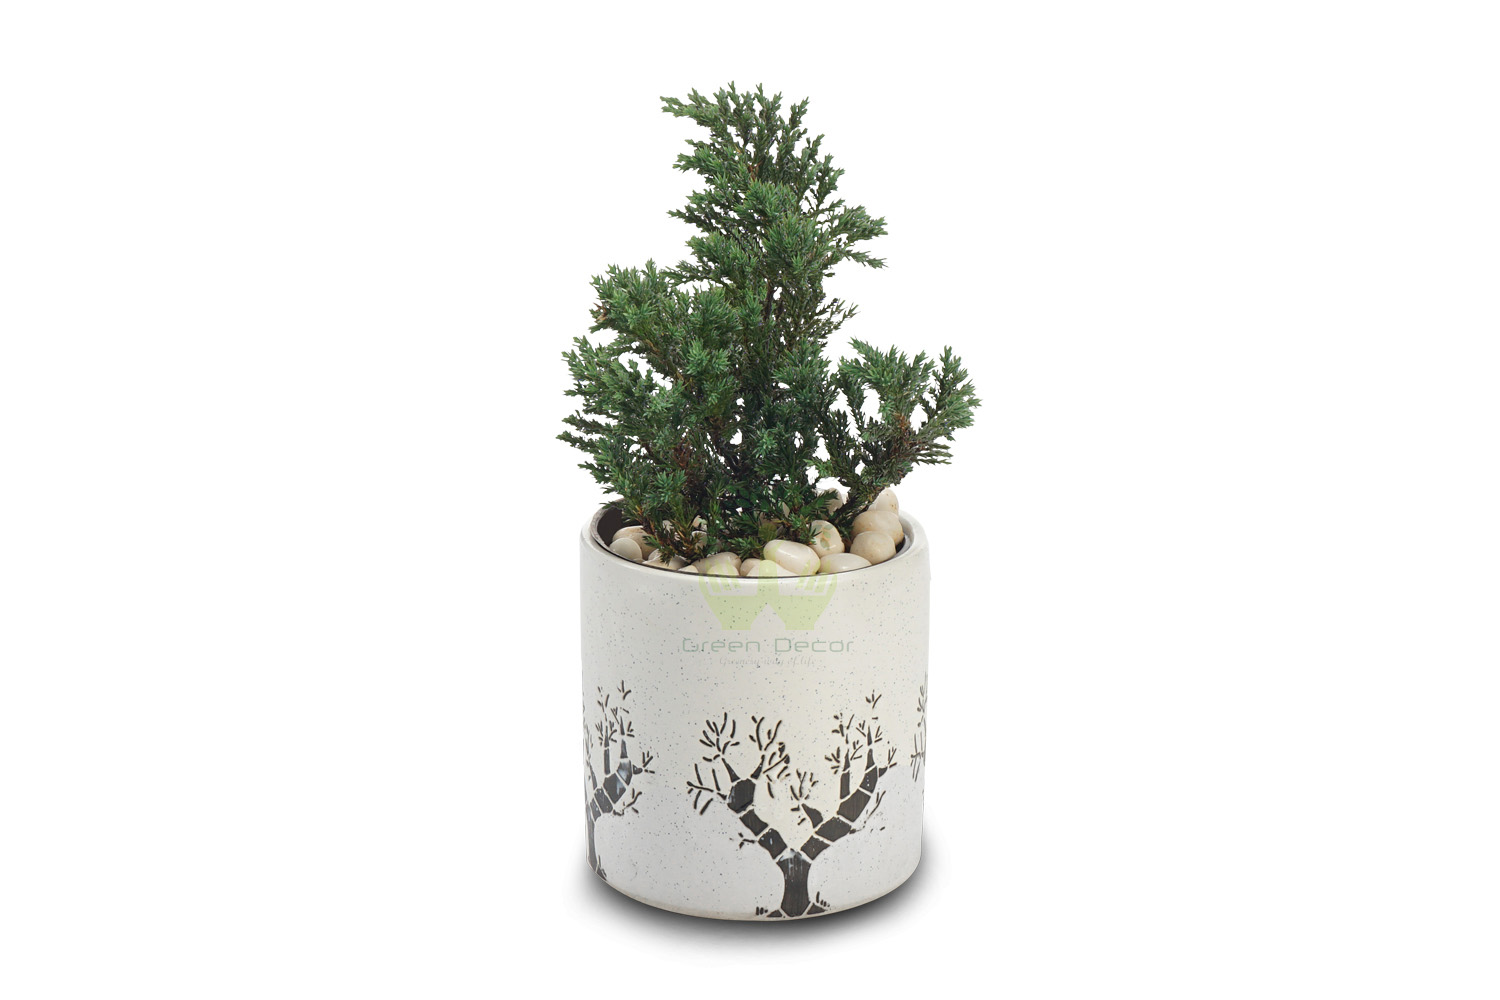 Buy Cedar Cypress Plants Front View , White Pots and seeds in Delhi NCR by the best online nursery shop Greendecor.